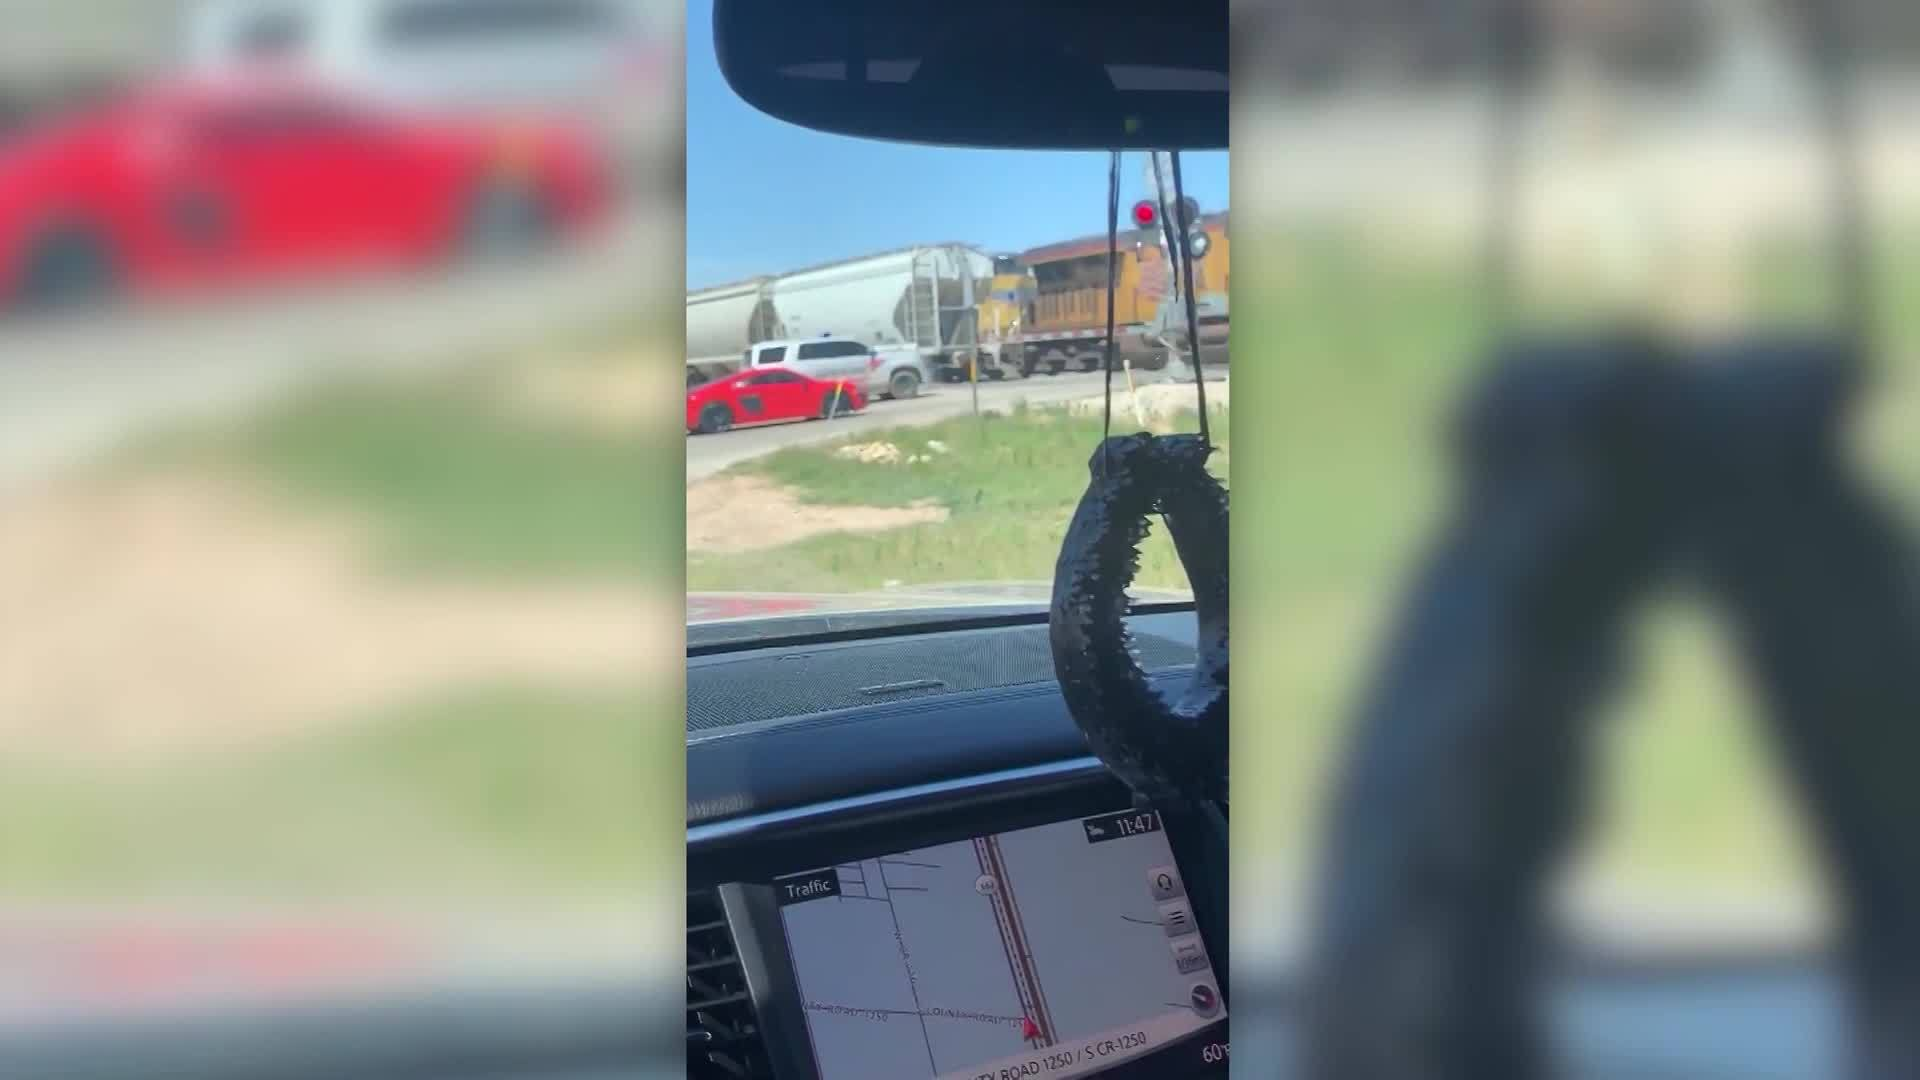 Caught on camera: Deputy's vehicle hit by train